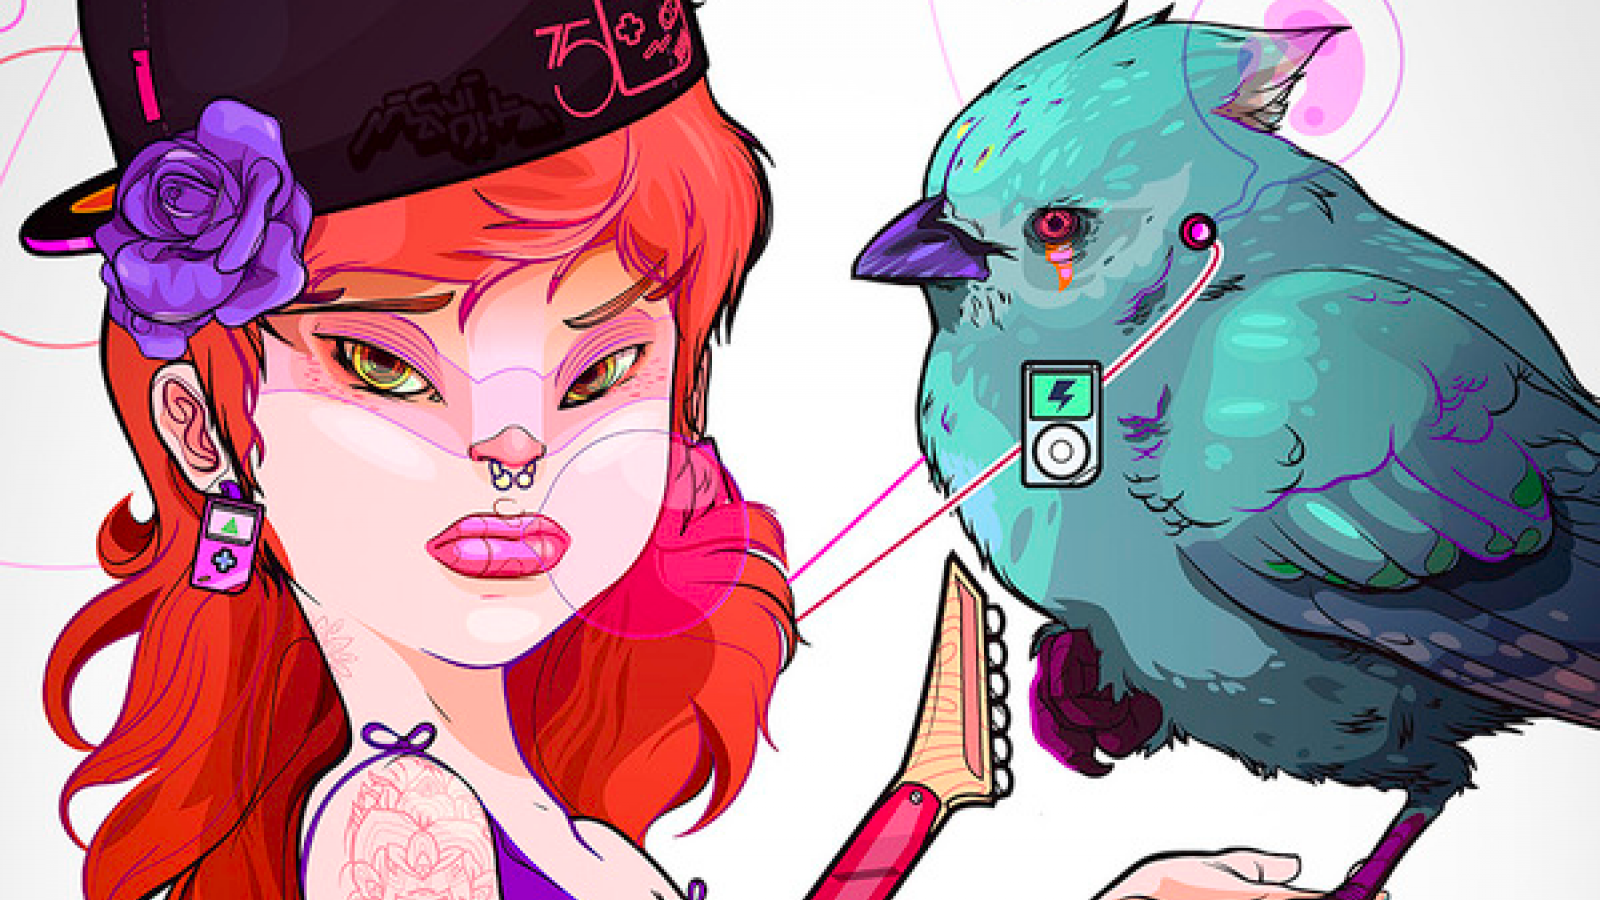 Fantastic Colorful Illustrations by Andrés Maquinita